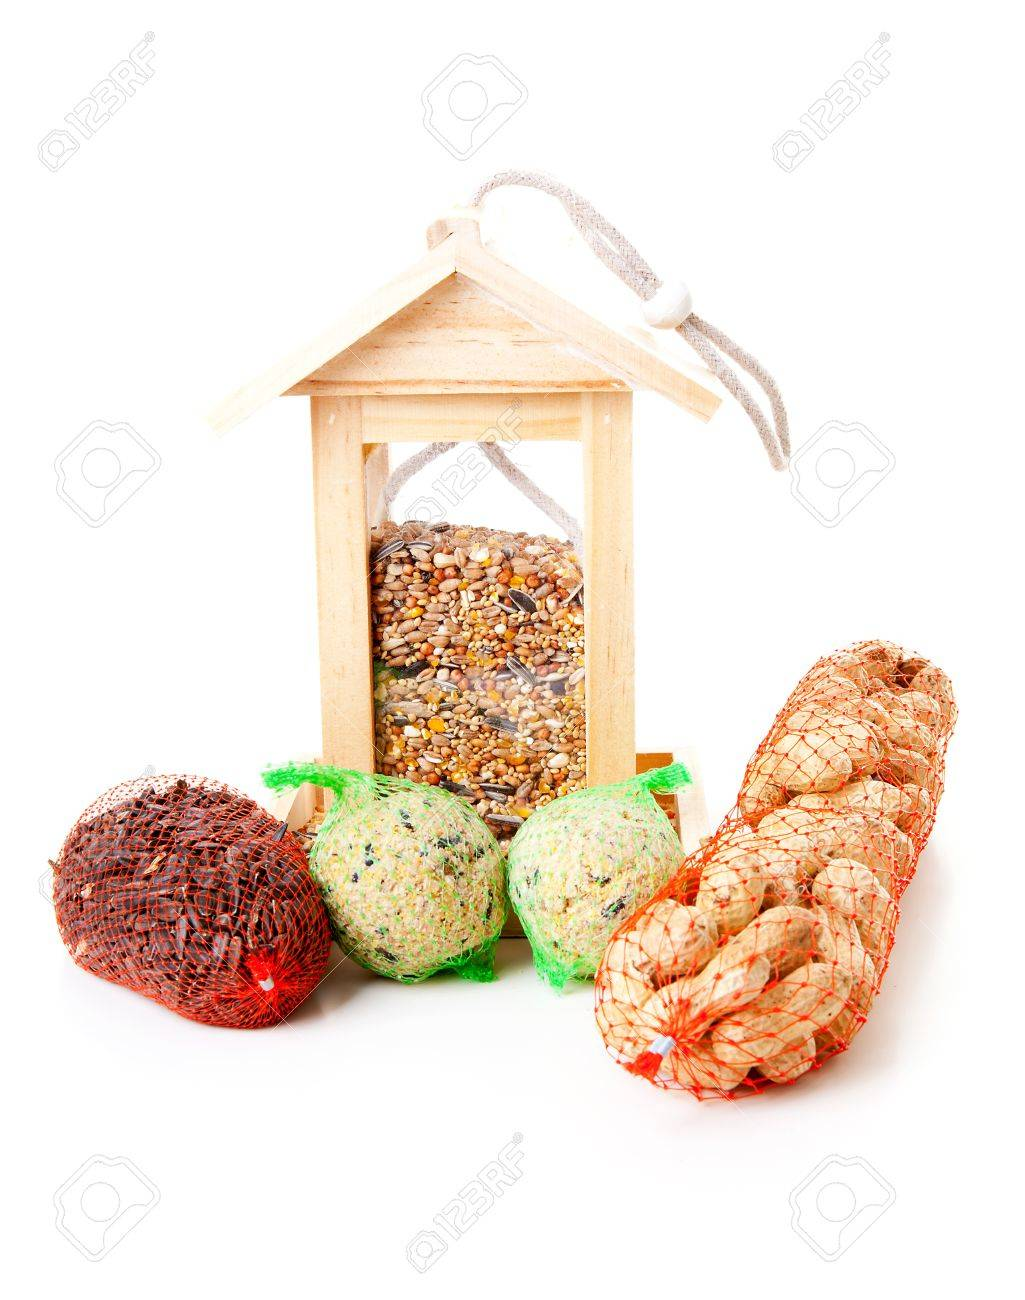 wooden bird feeder house with food over white background Stock Photo - 12793735